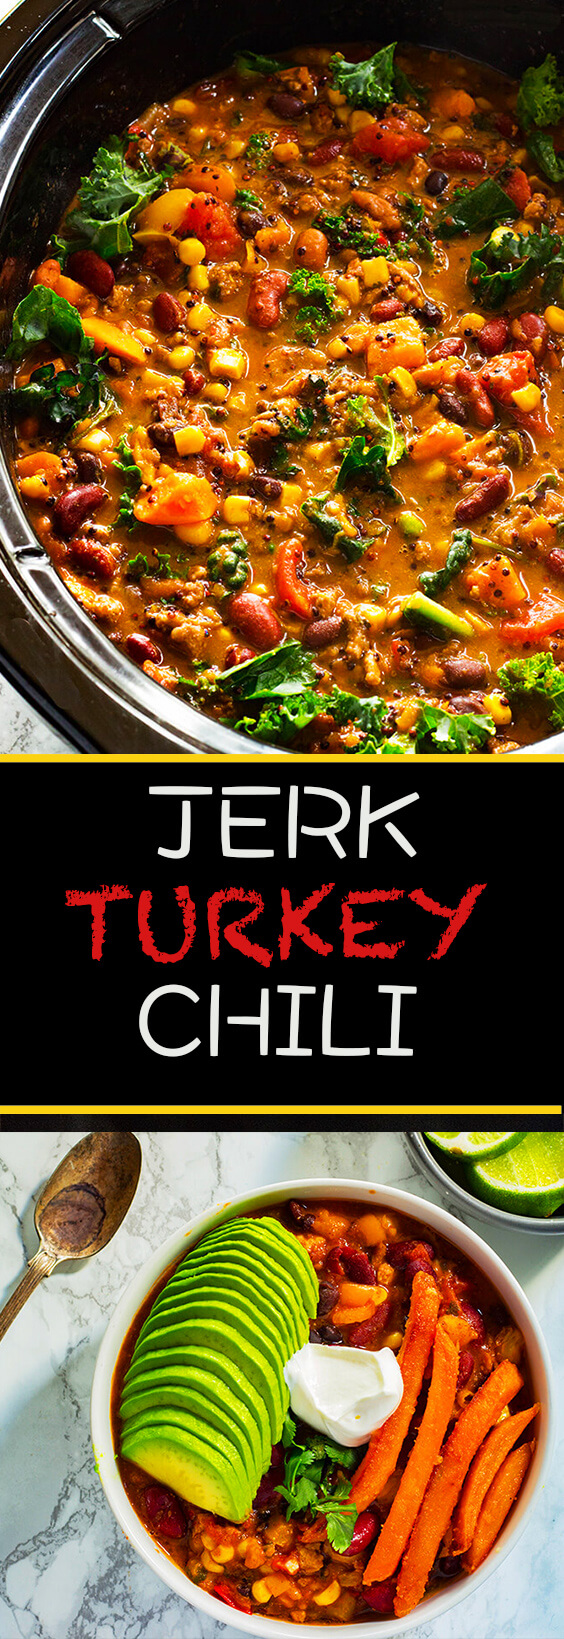 This Slow- Cooker Jerk Turkey Chili recipe is the perfect weeknight dinner. It has the right amount of spice to add some excite everyone. make it today.